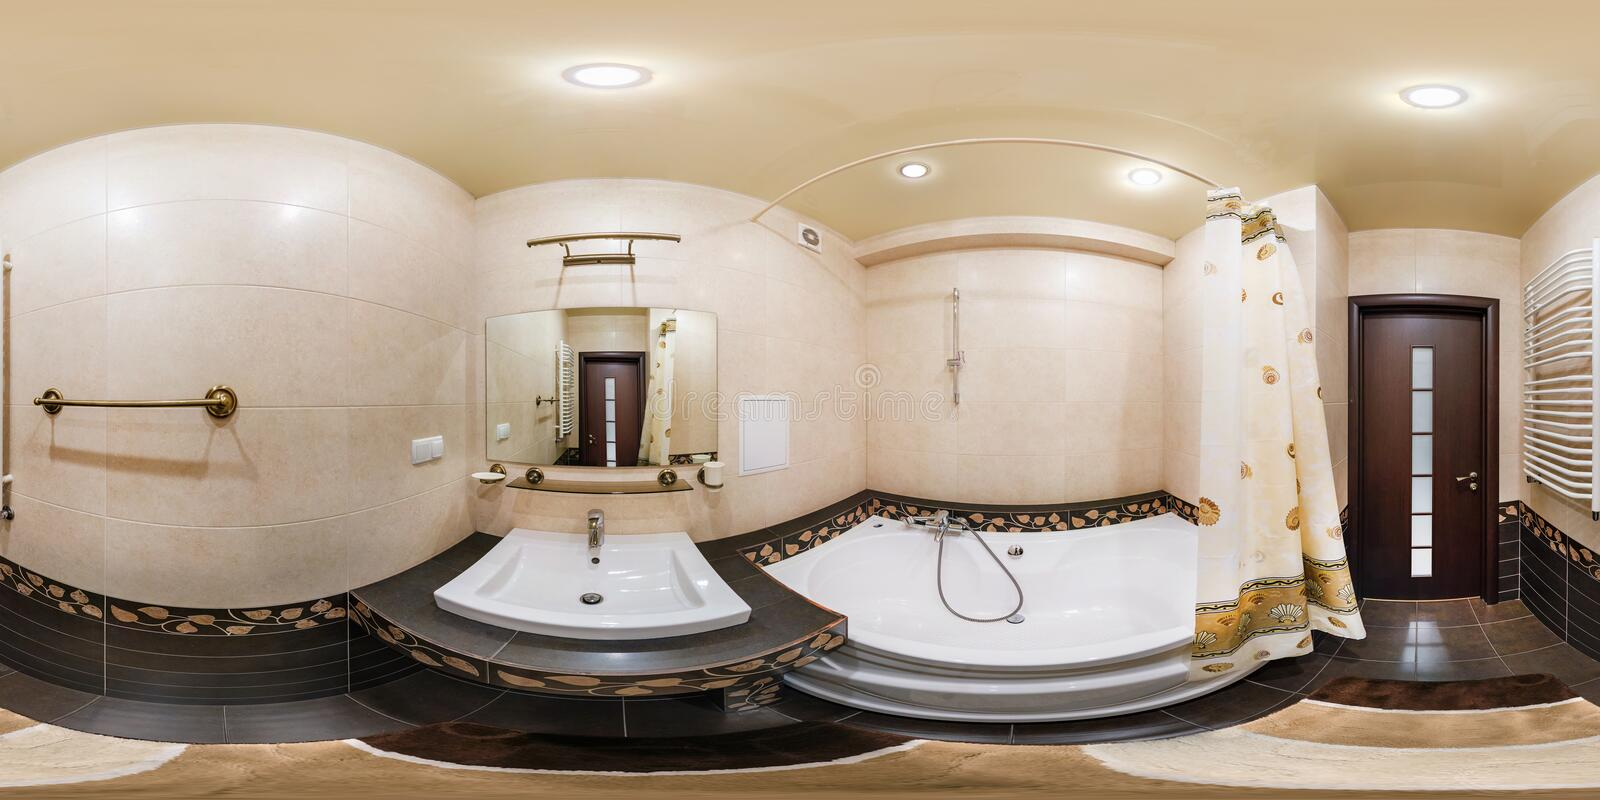 MINSK, BELARUS - MARCH 2, 2013: Full spherical 360 degrees seamless panorama in equirectangular equidistant projection, panorama. In interior bathroom restroom stock photo